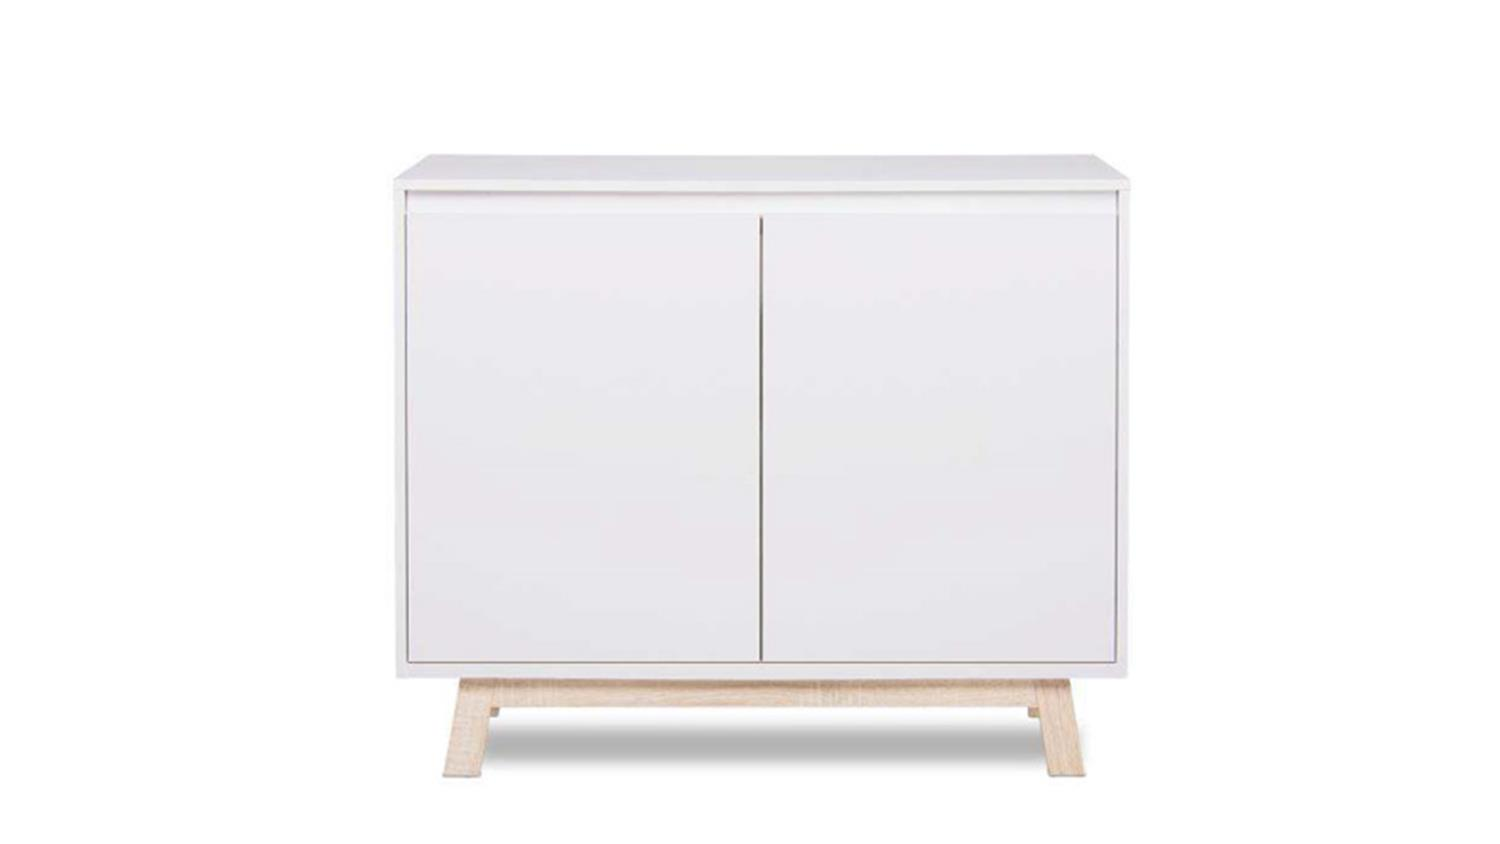 Kommode apart 1 sideboard anrichte in wei und sonoma for Kommode 100 x 60